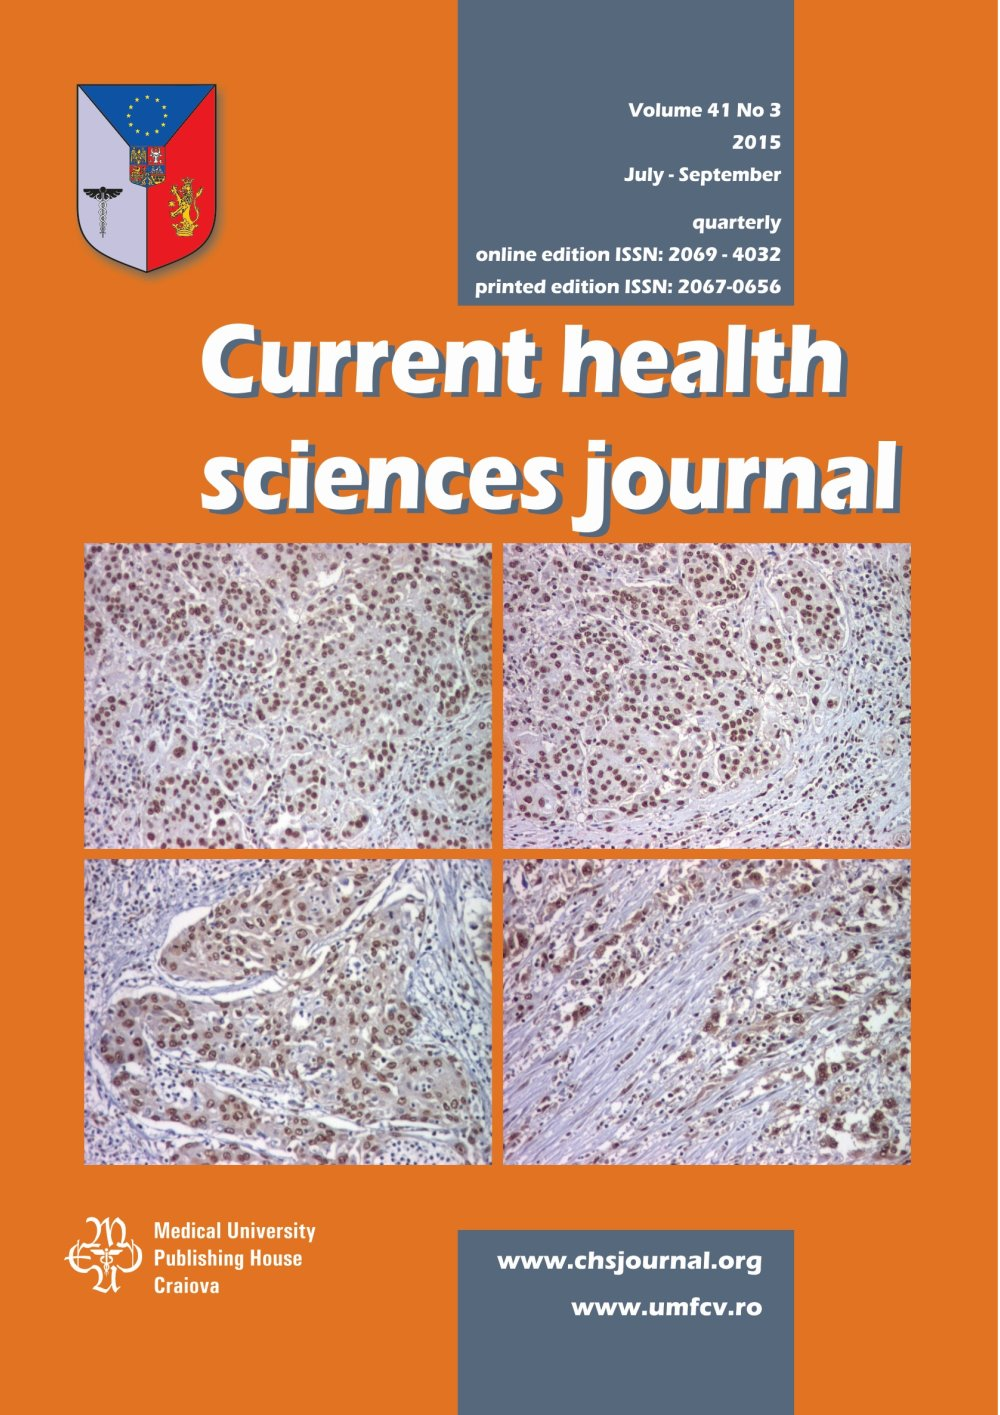 Current Health Sciences Journal, vol. 41 no. 3, 2015